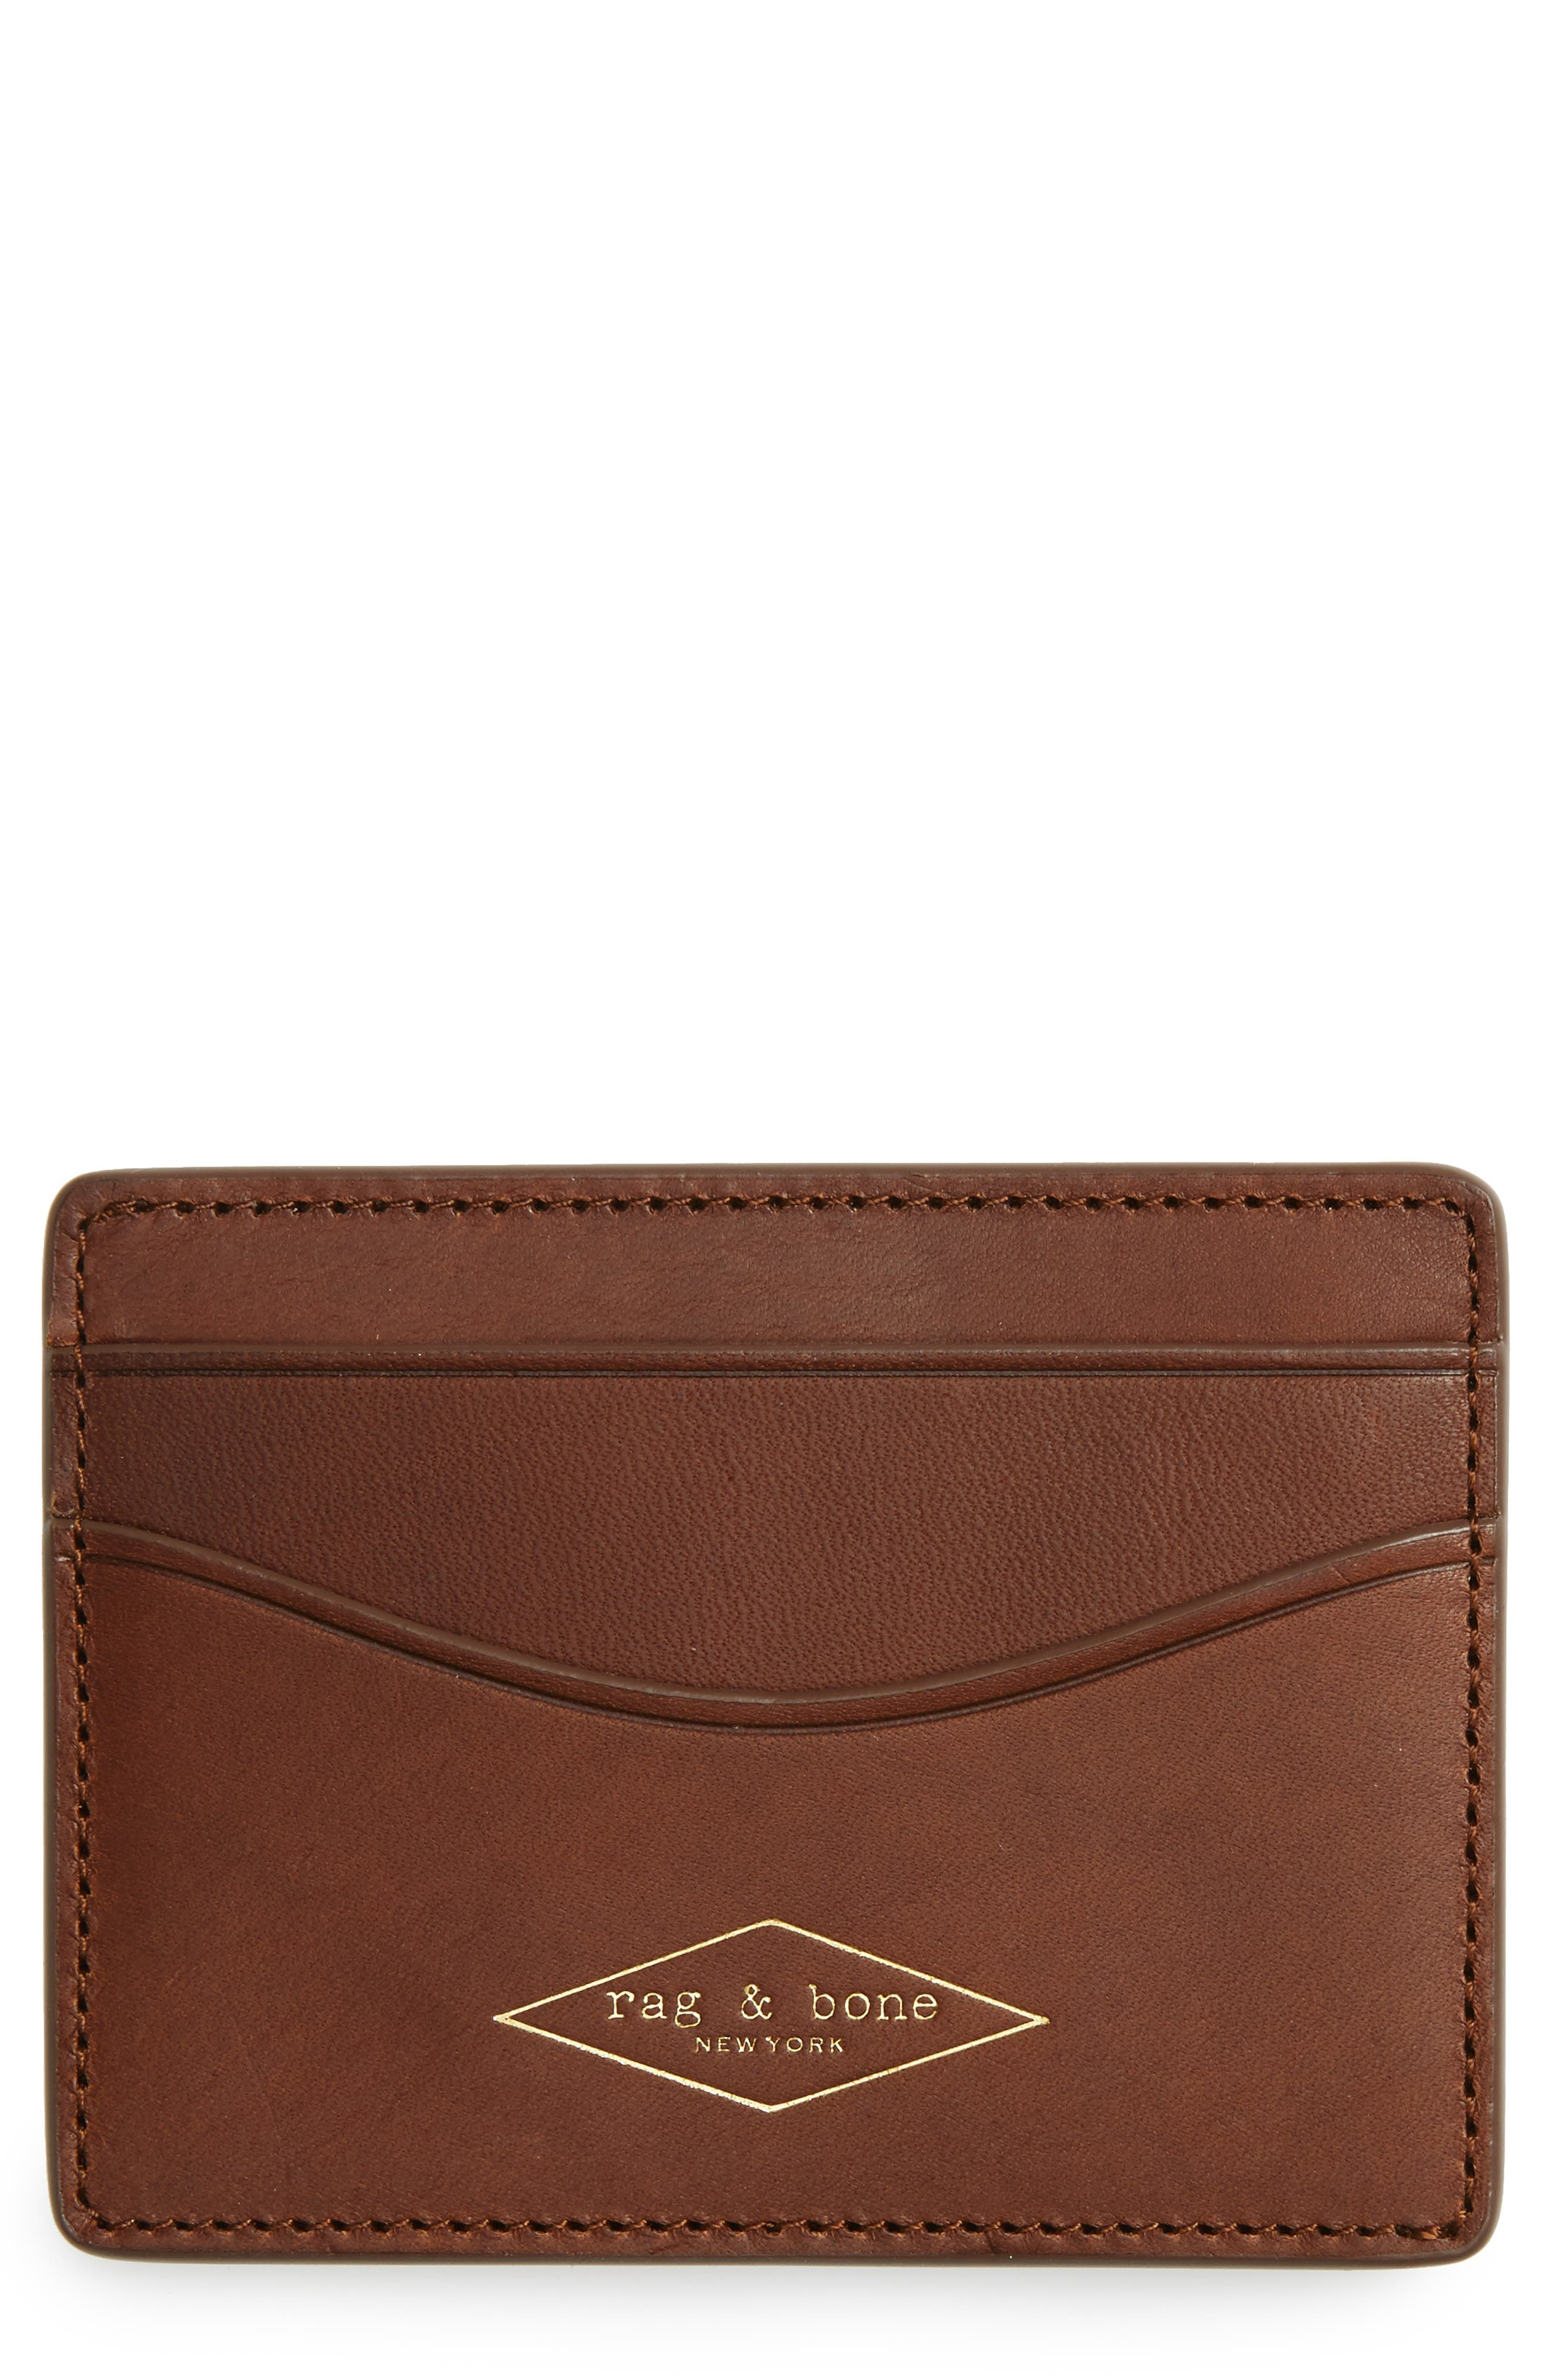 Leather Card Case,                         Main,                         color, Brown